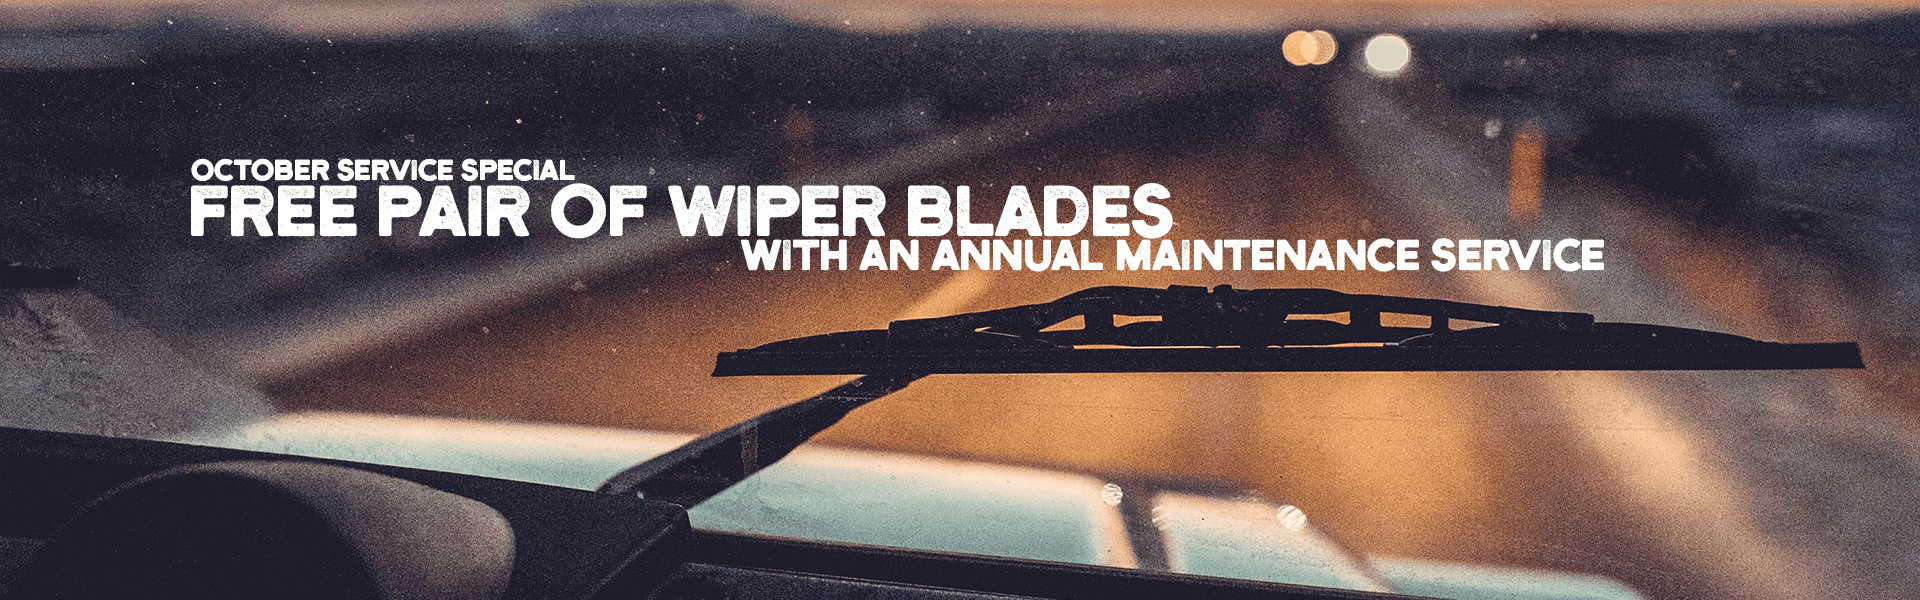 Free Wiper Blades with Maintenance